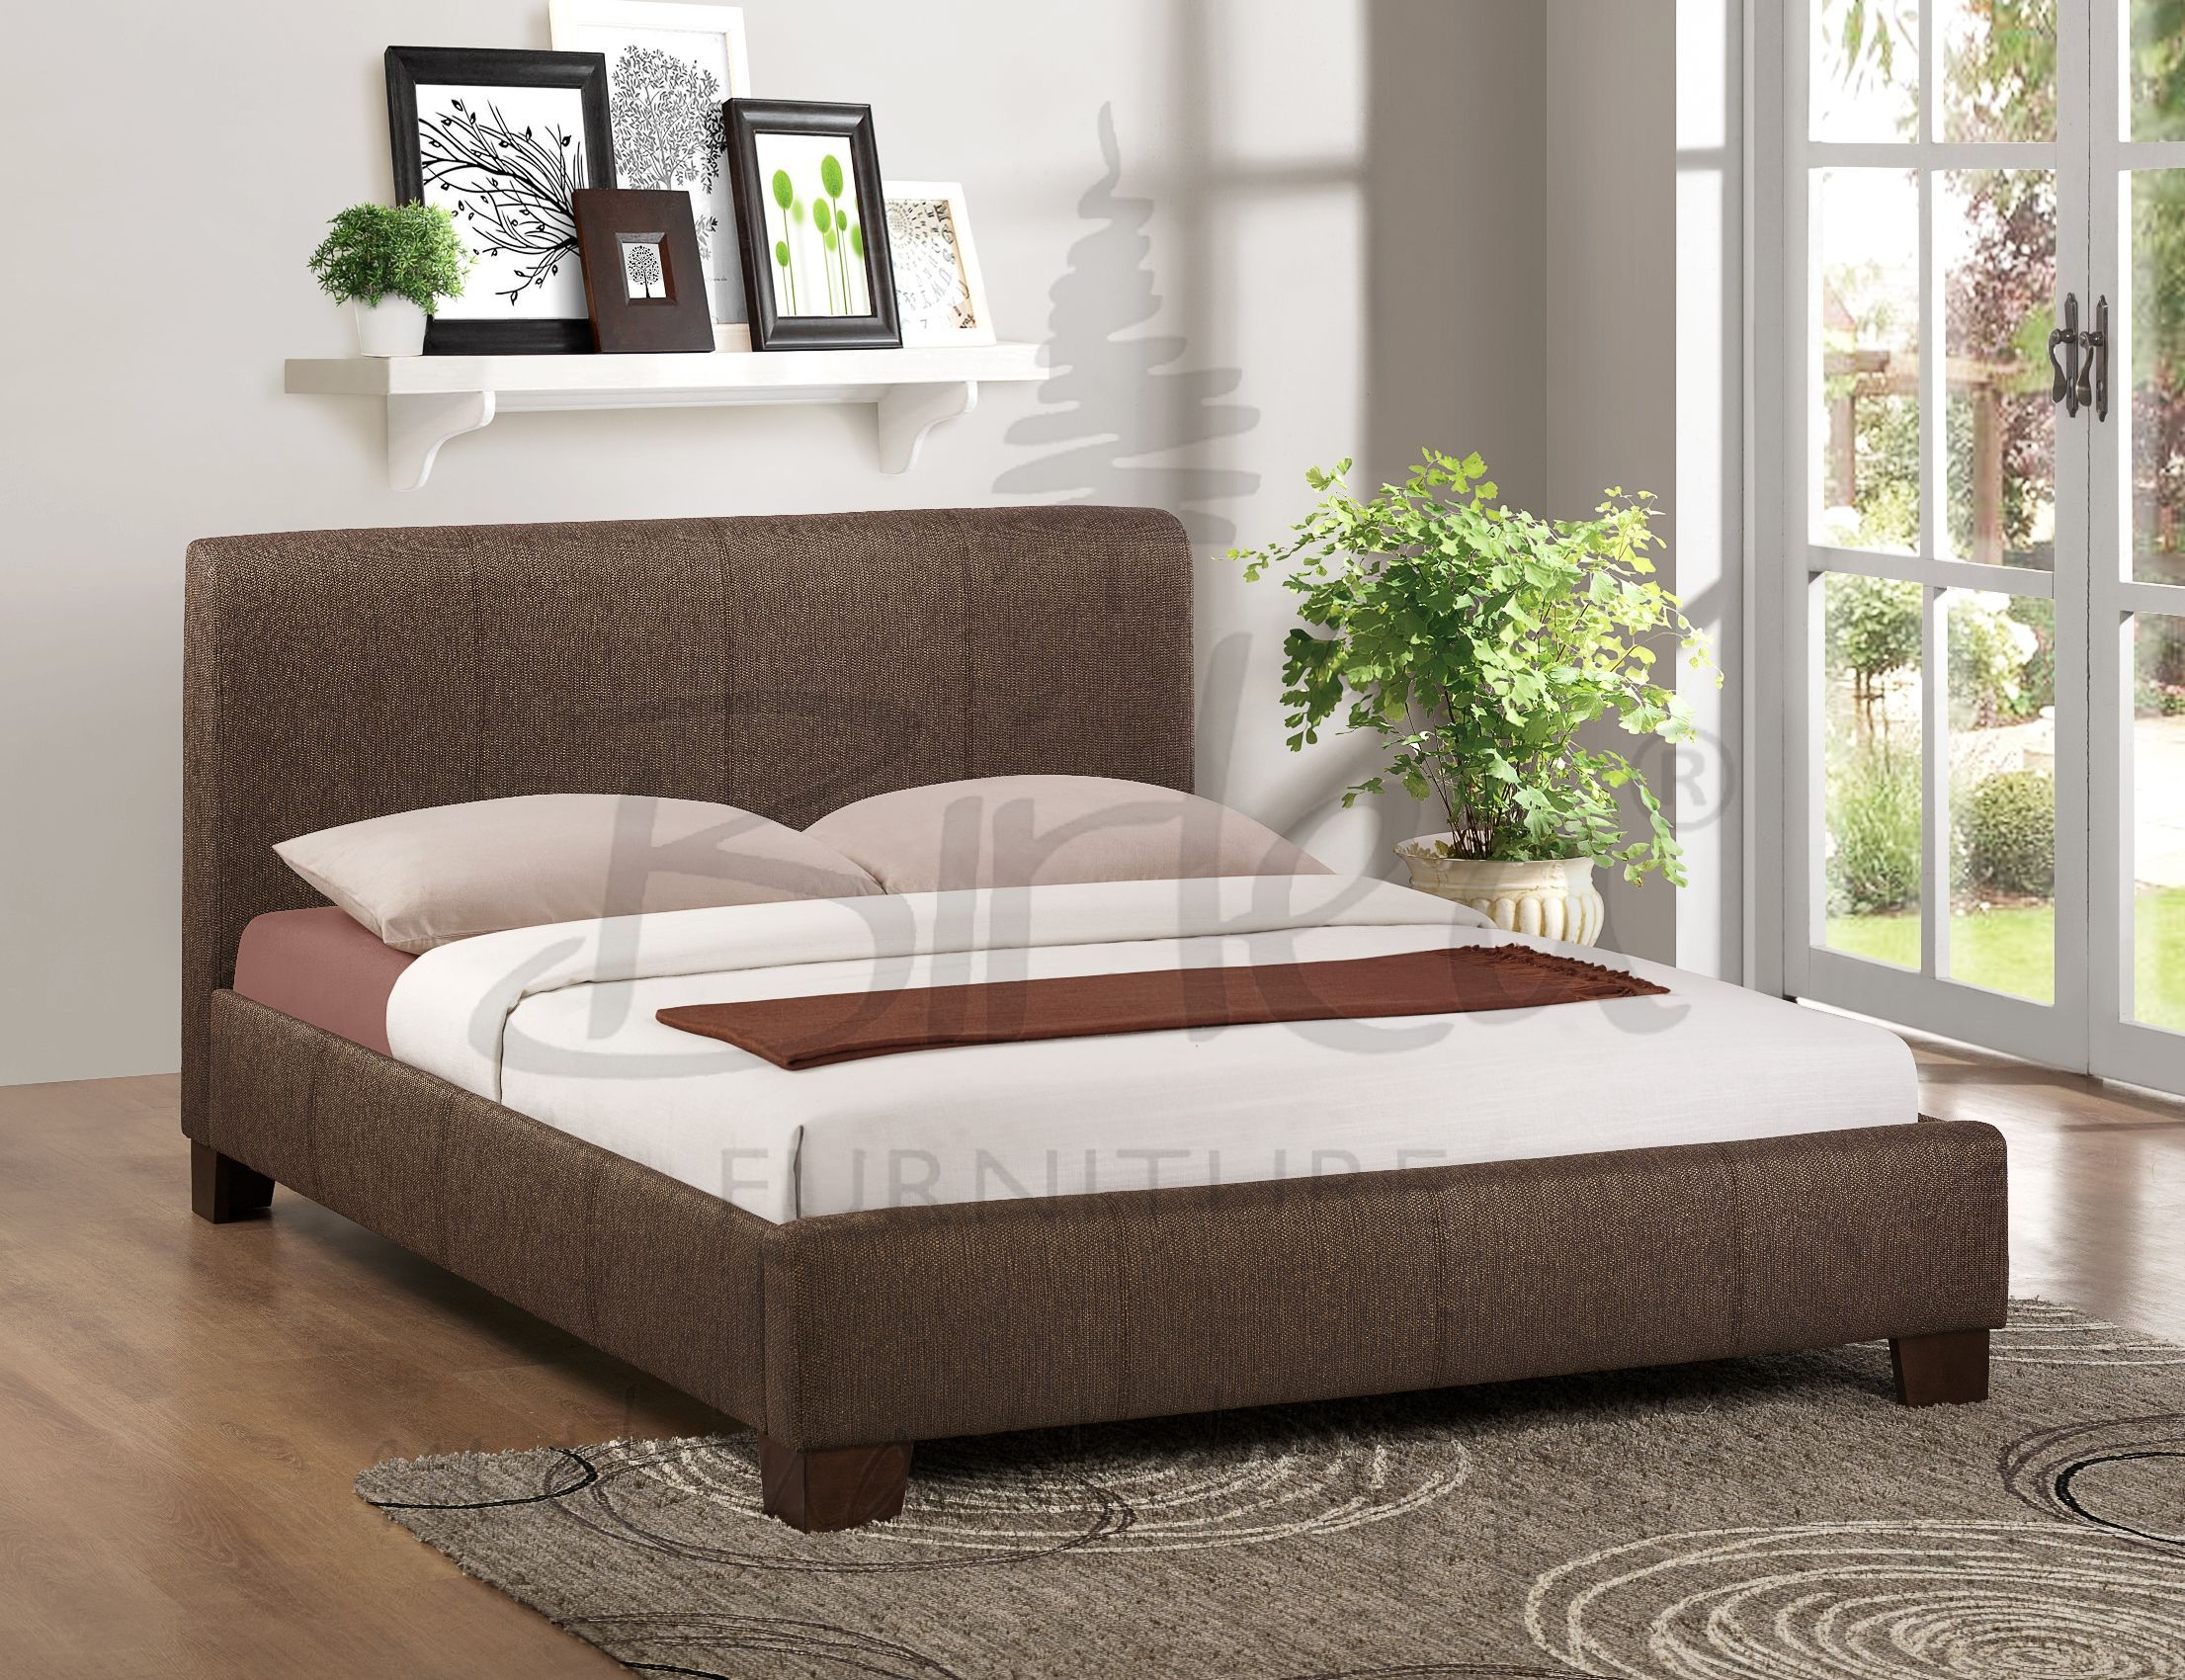 Admirable Birlea Brooklyn Fabric Bed Chocolate Available In 4 46 Theyellowbook Wood Chair Design Ideas Theyellowbookinfo